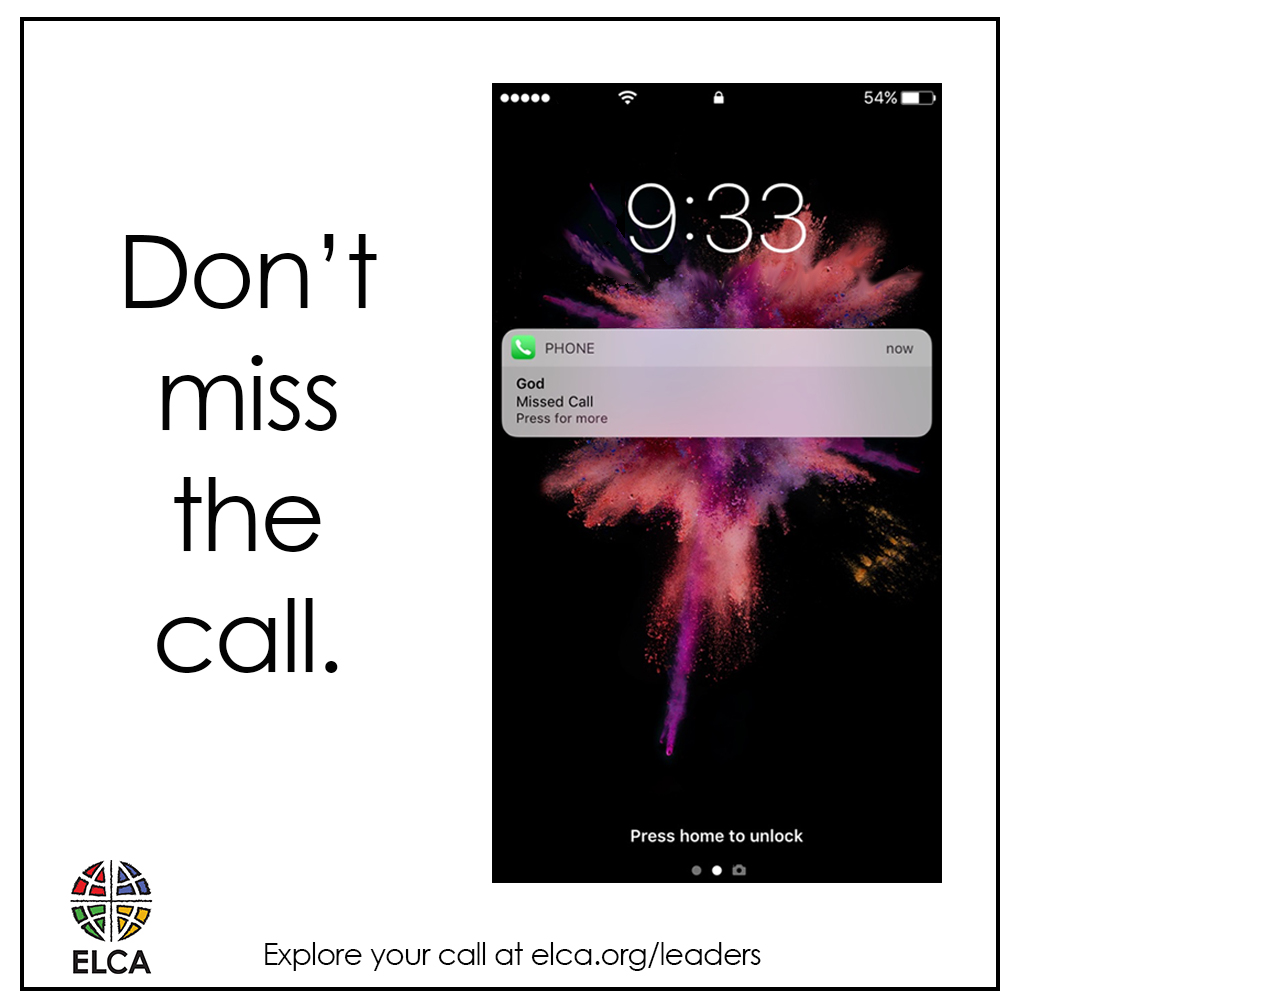 Don't miss the call.